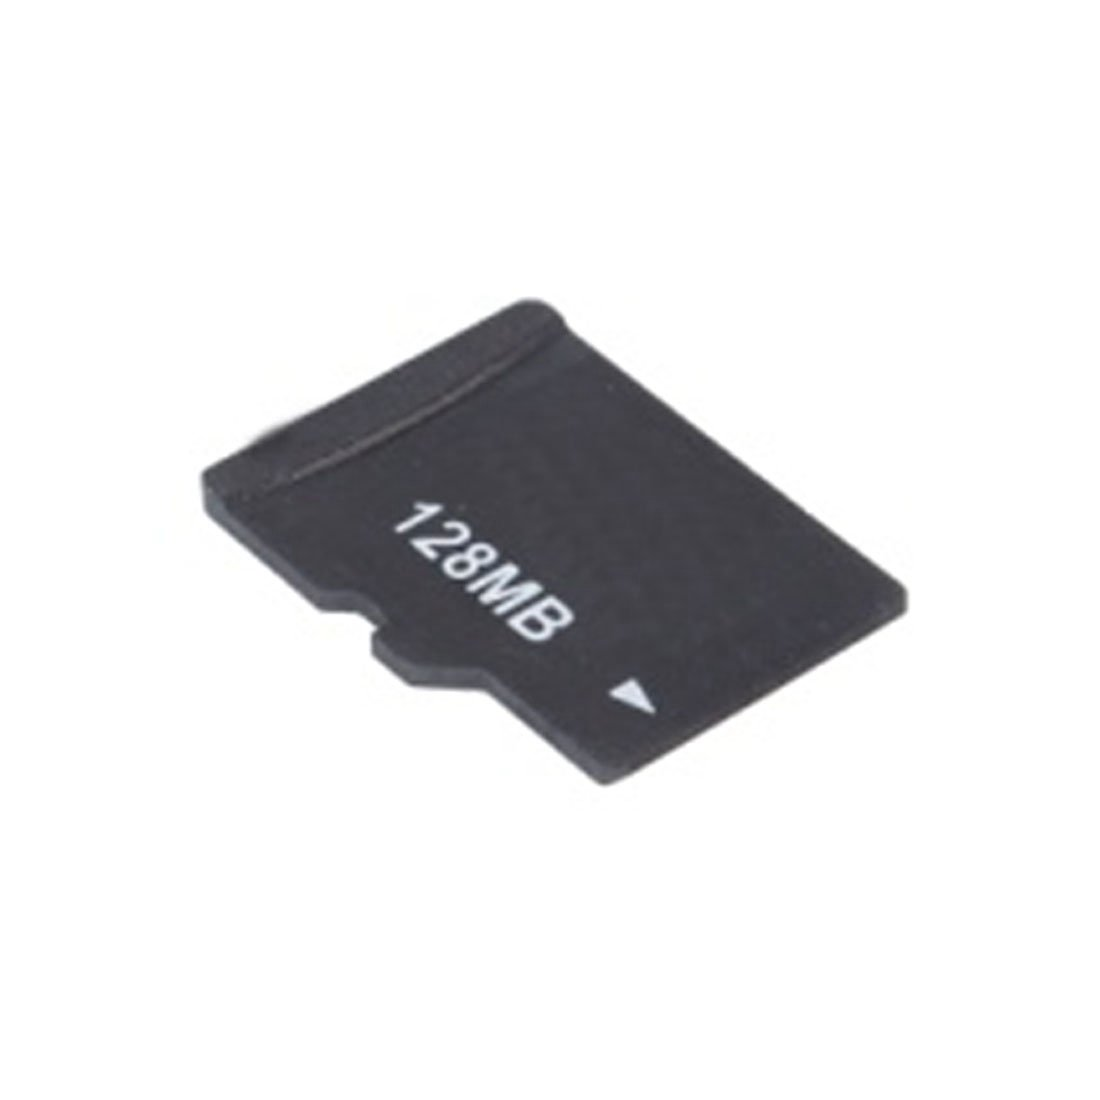 Memory Card - SODIAL(R)128MB Micro SD TF Memory Card For Samsung Galaxy S5 S4 S3 Note 4 3 2 Android Tablet